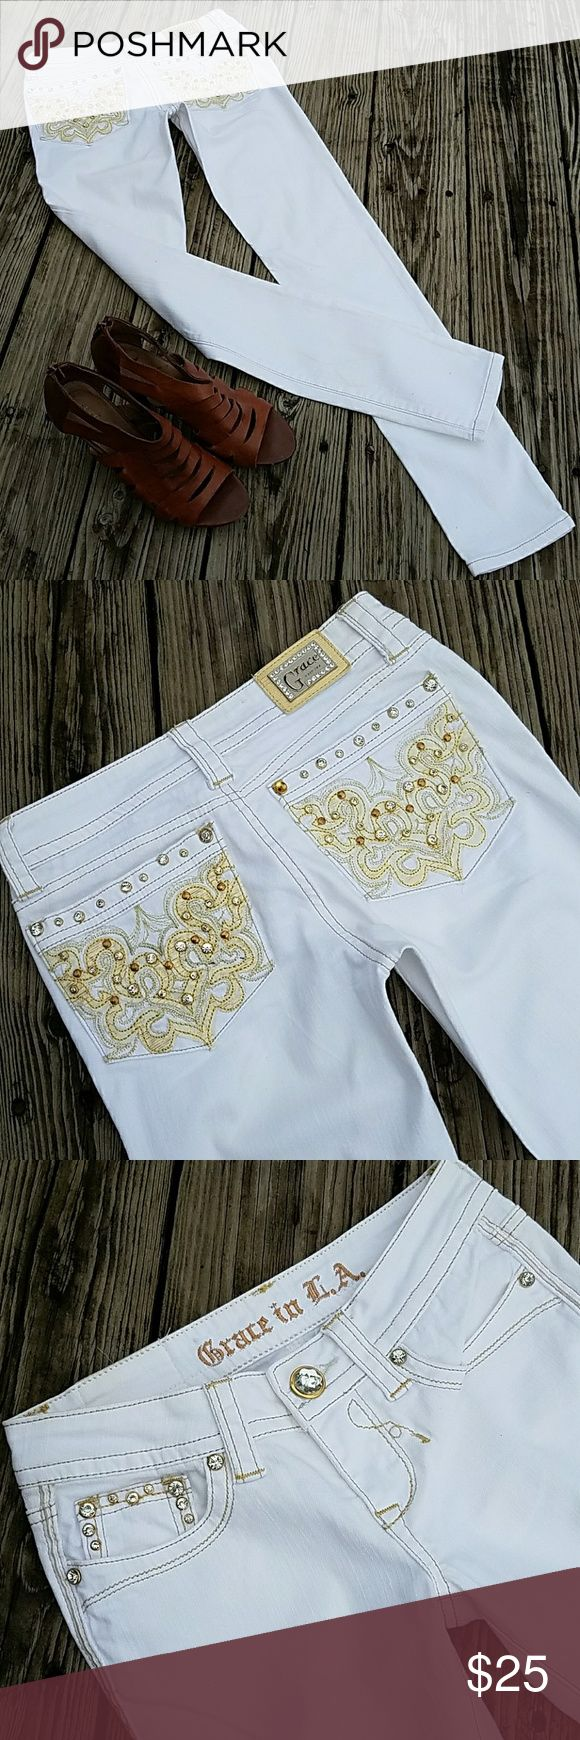 GRACE In LA Cropped Skinny Jeans~ Size 24 x 30 Absolutely gorgeous! GRACE in LA, cropped skinny jeans! White with gold detail and bling on back and front pockets. All rhinestones intact. Measurements are W24 x L30.   FREE GIFT WITH PURCHASE OF ANY BUNDLE!!  Tags: camo country girl western southwestern turquoise bling southern girl womens juniors teens booties boots shoes grace in LA fall winter clothing aeropostale boot cut jeans miss me buckle ariat cowgirl style justin boots skinny cropped…